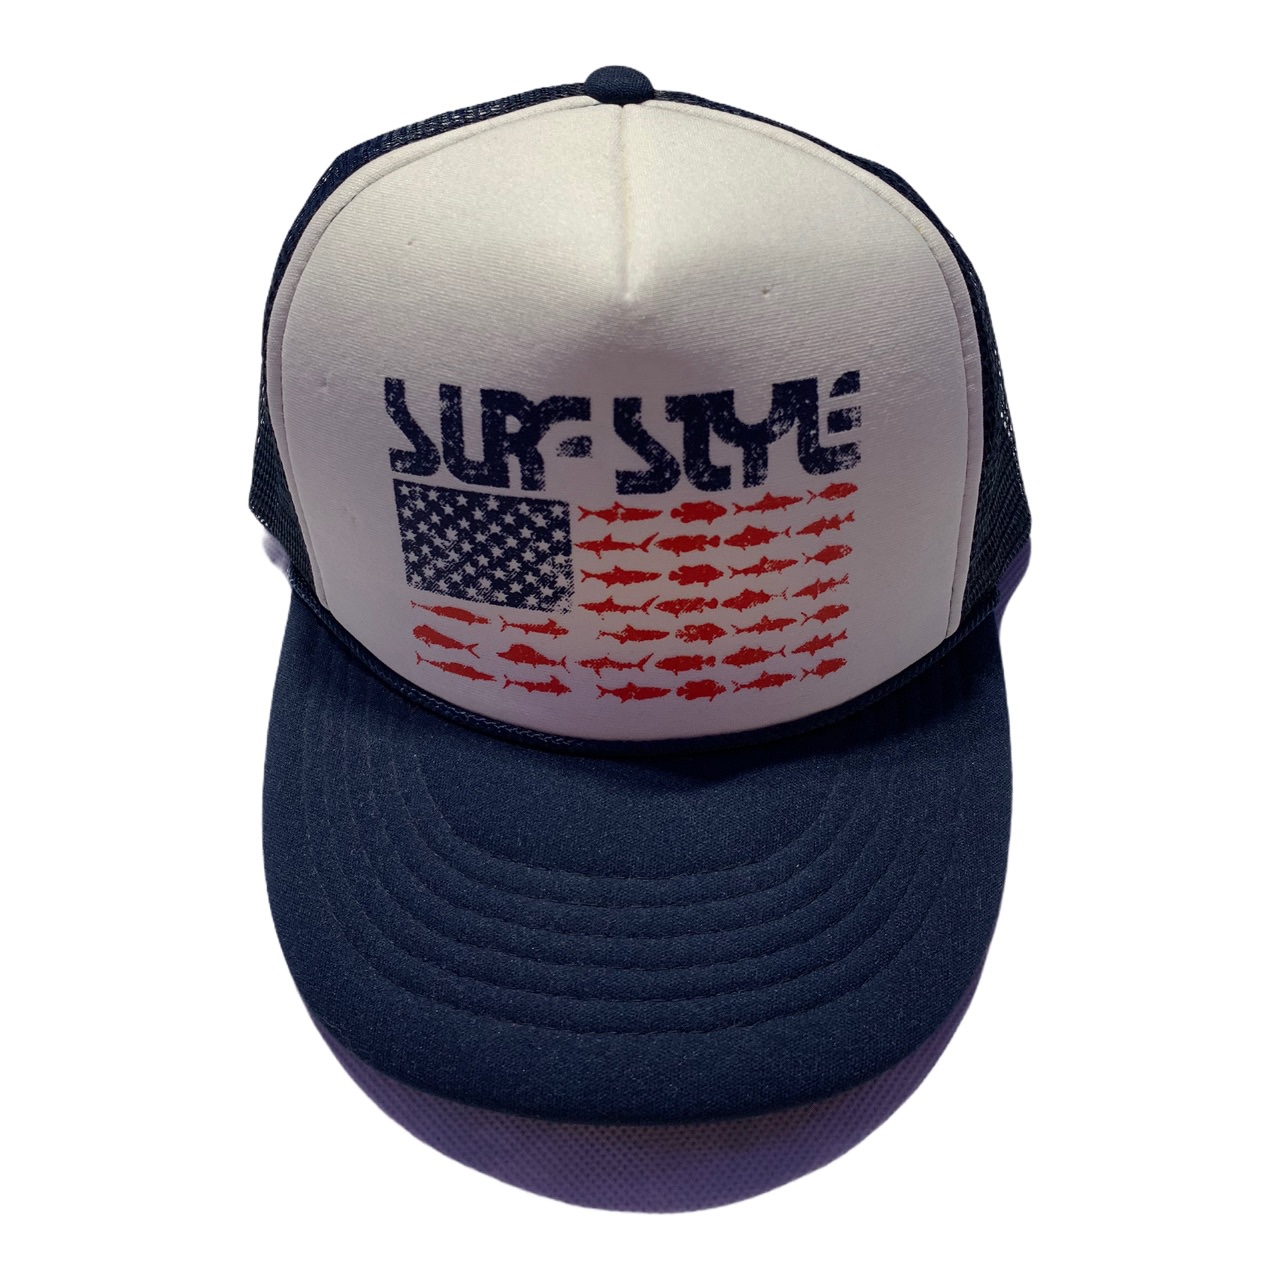 Product Image 1 - Vintage White and Navy Surf